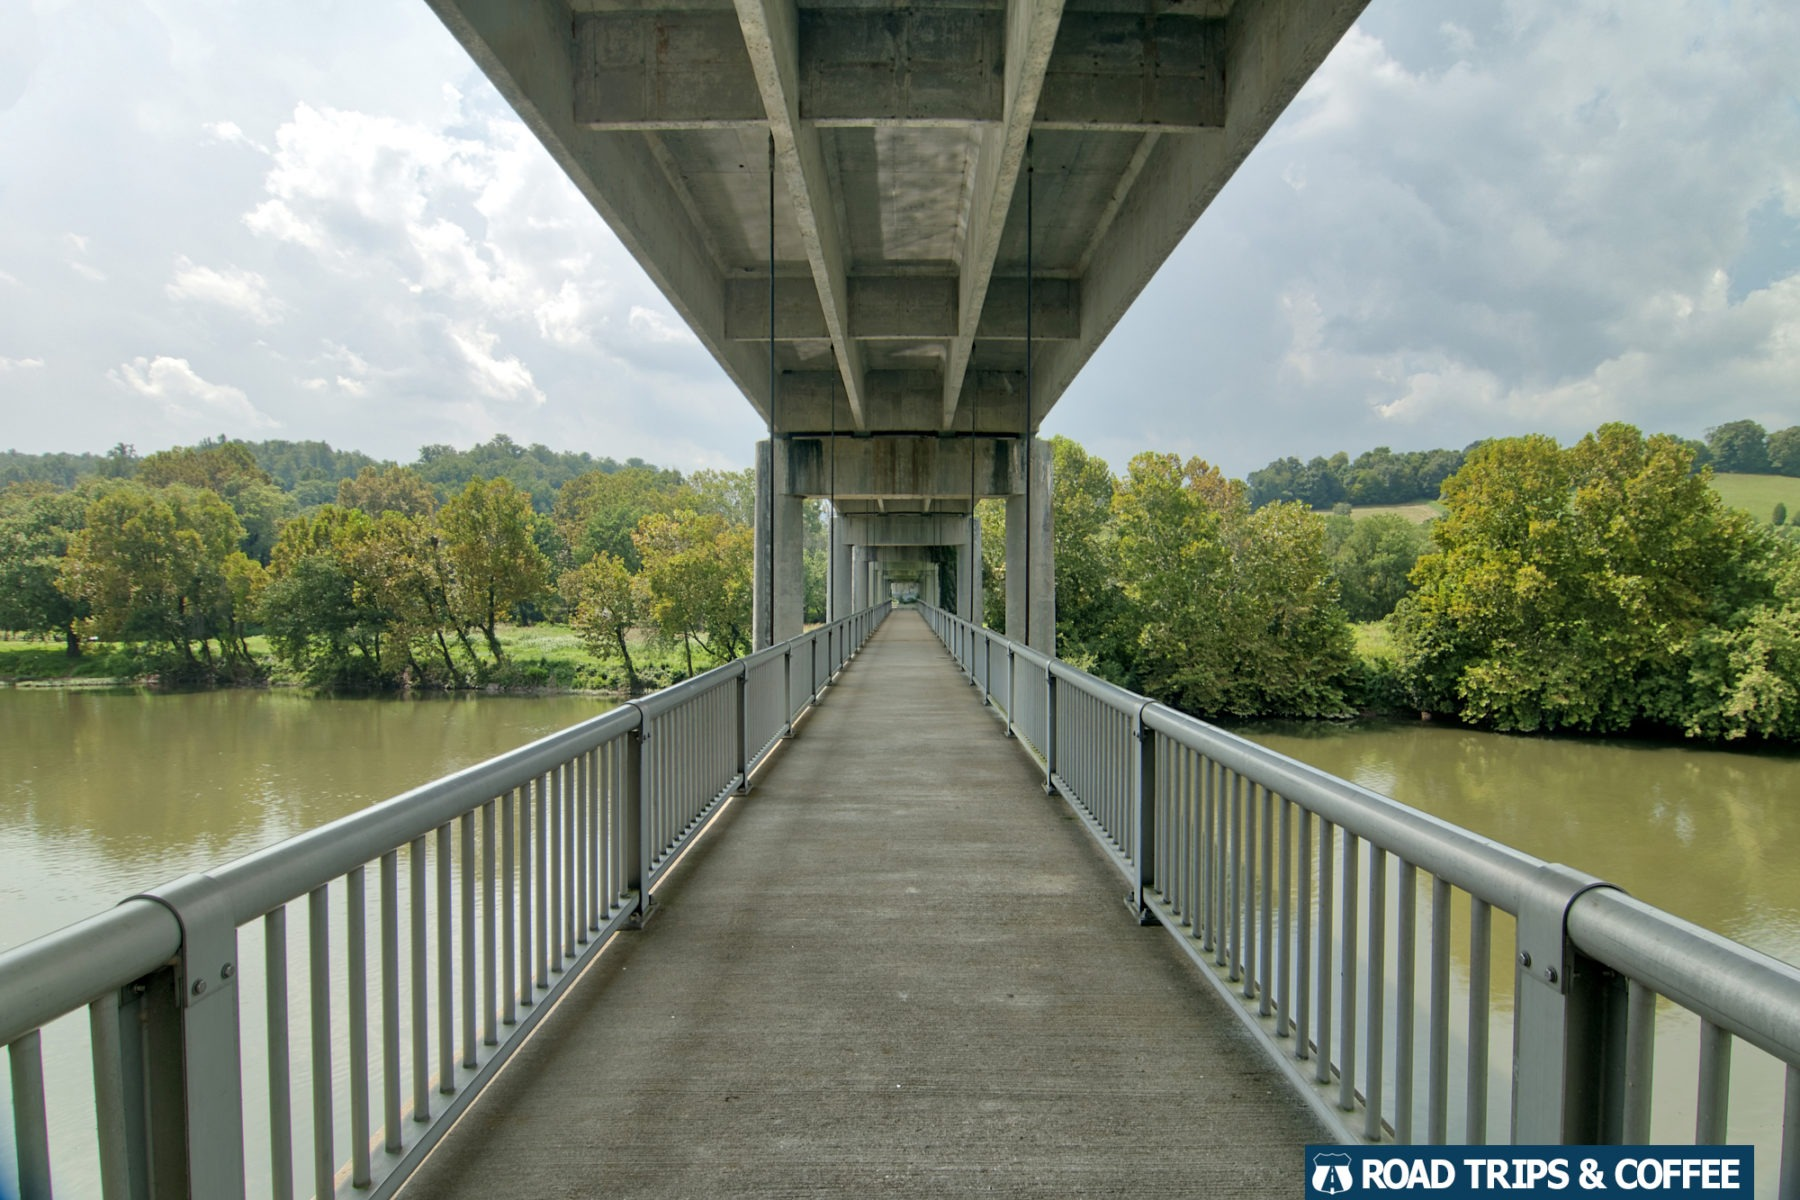 A pedestrian path beneath the bridge crossing the James River on the Blue Ridge Parkway in Virginia